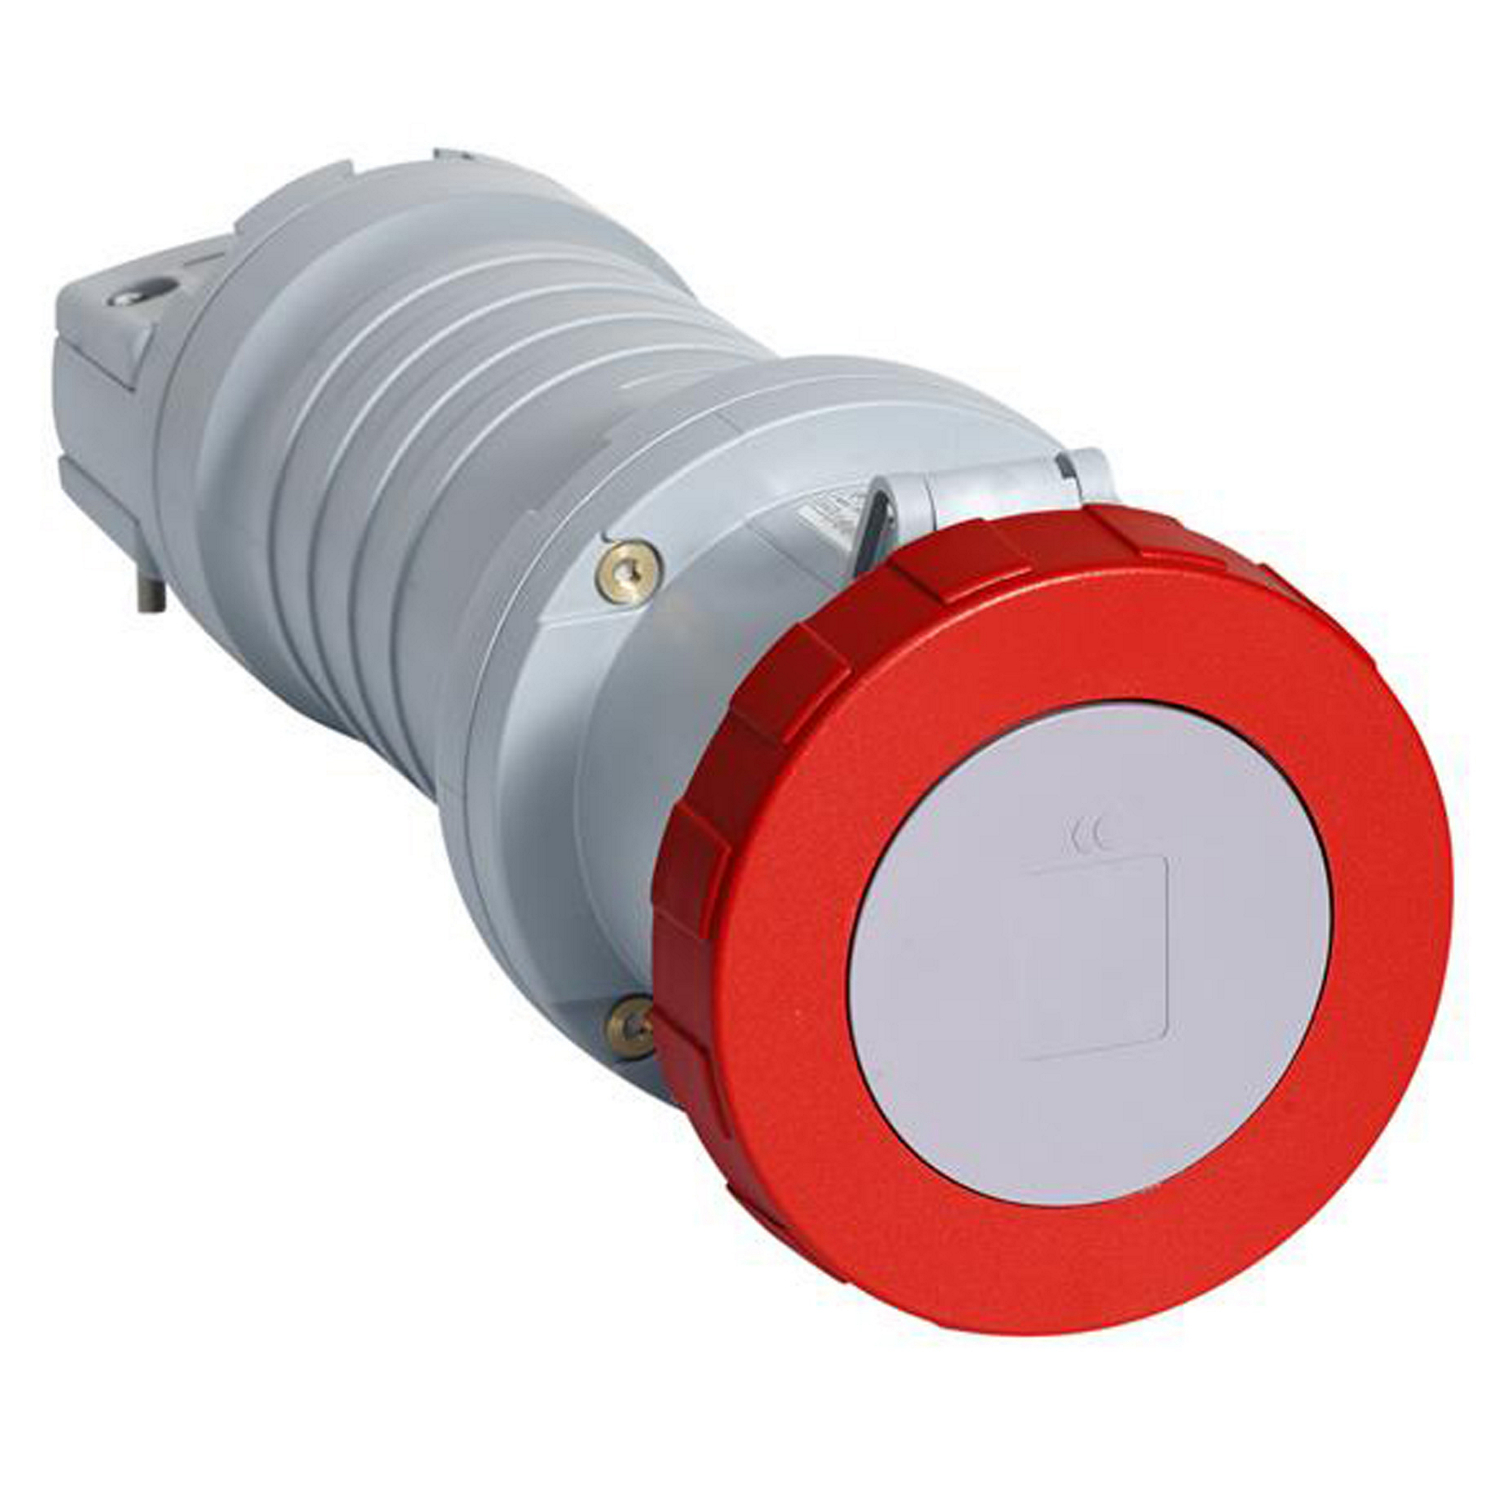 ABB ABB560C7W Pin and Sleeve Connector